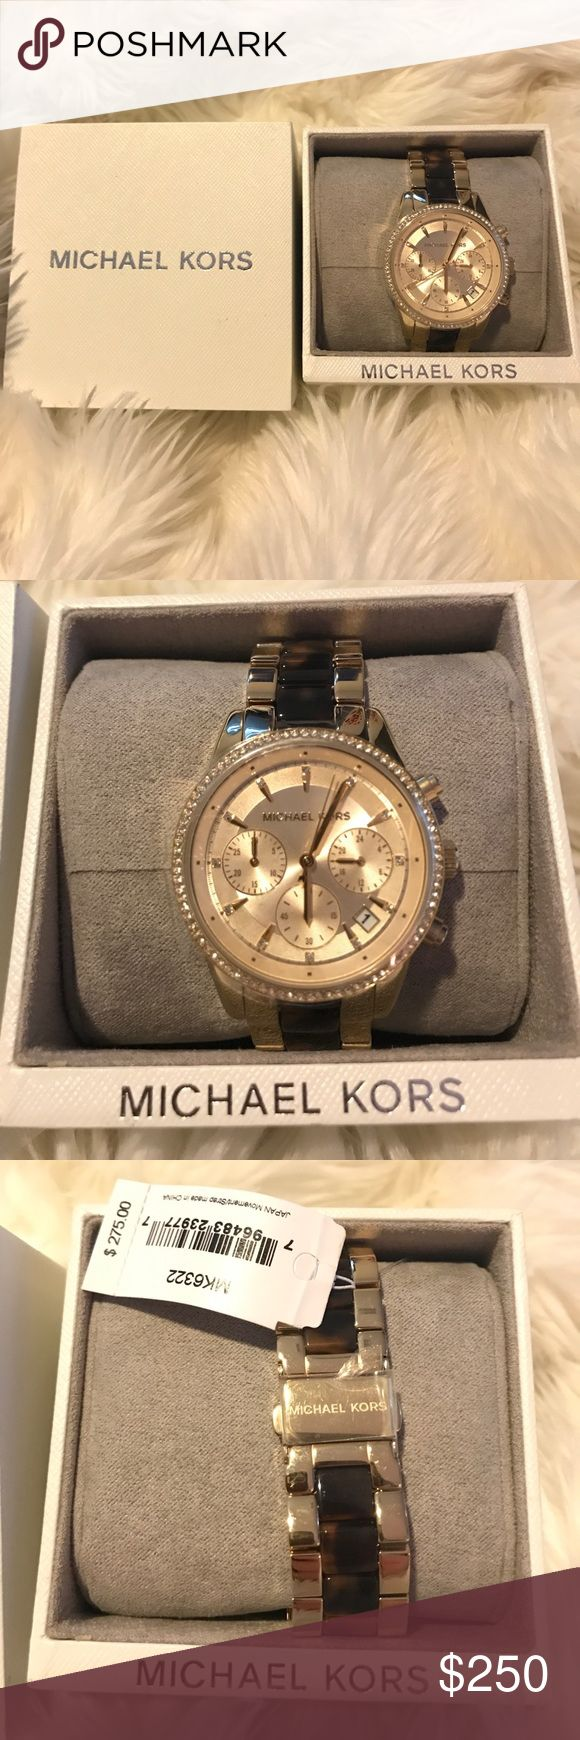 MICHAEL KORS GOLD AND TORTOISE WATCH BEAUTIFUL MICHAEL KORS GOLD AND TORTOISE WATCH, NWT, perfect for work or a night out! Michael Kors Accessories Watches